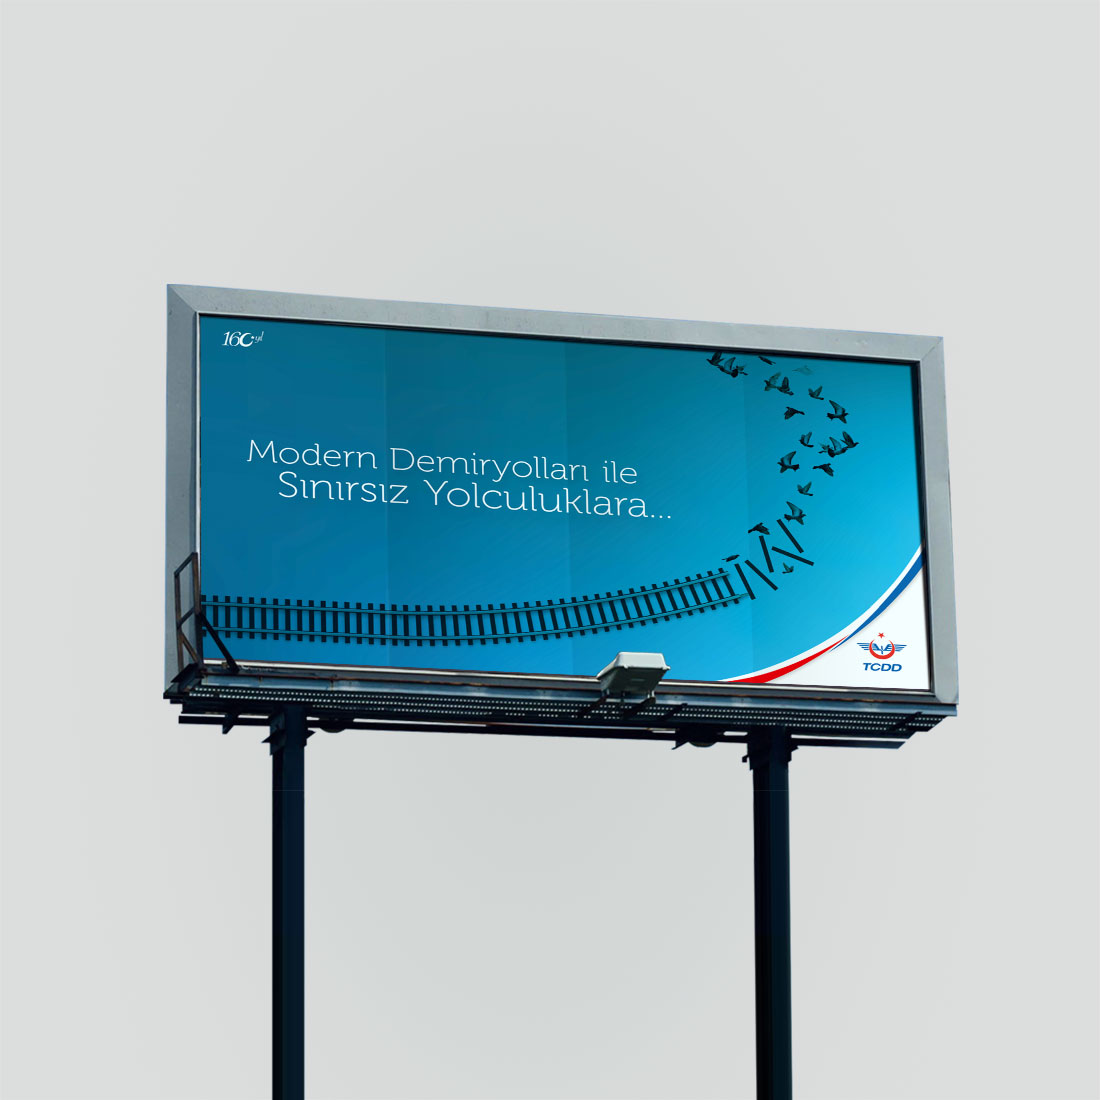 TCDD BILLBOARD